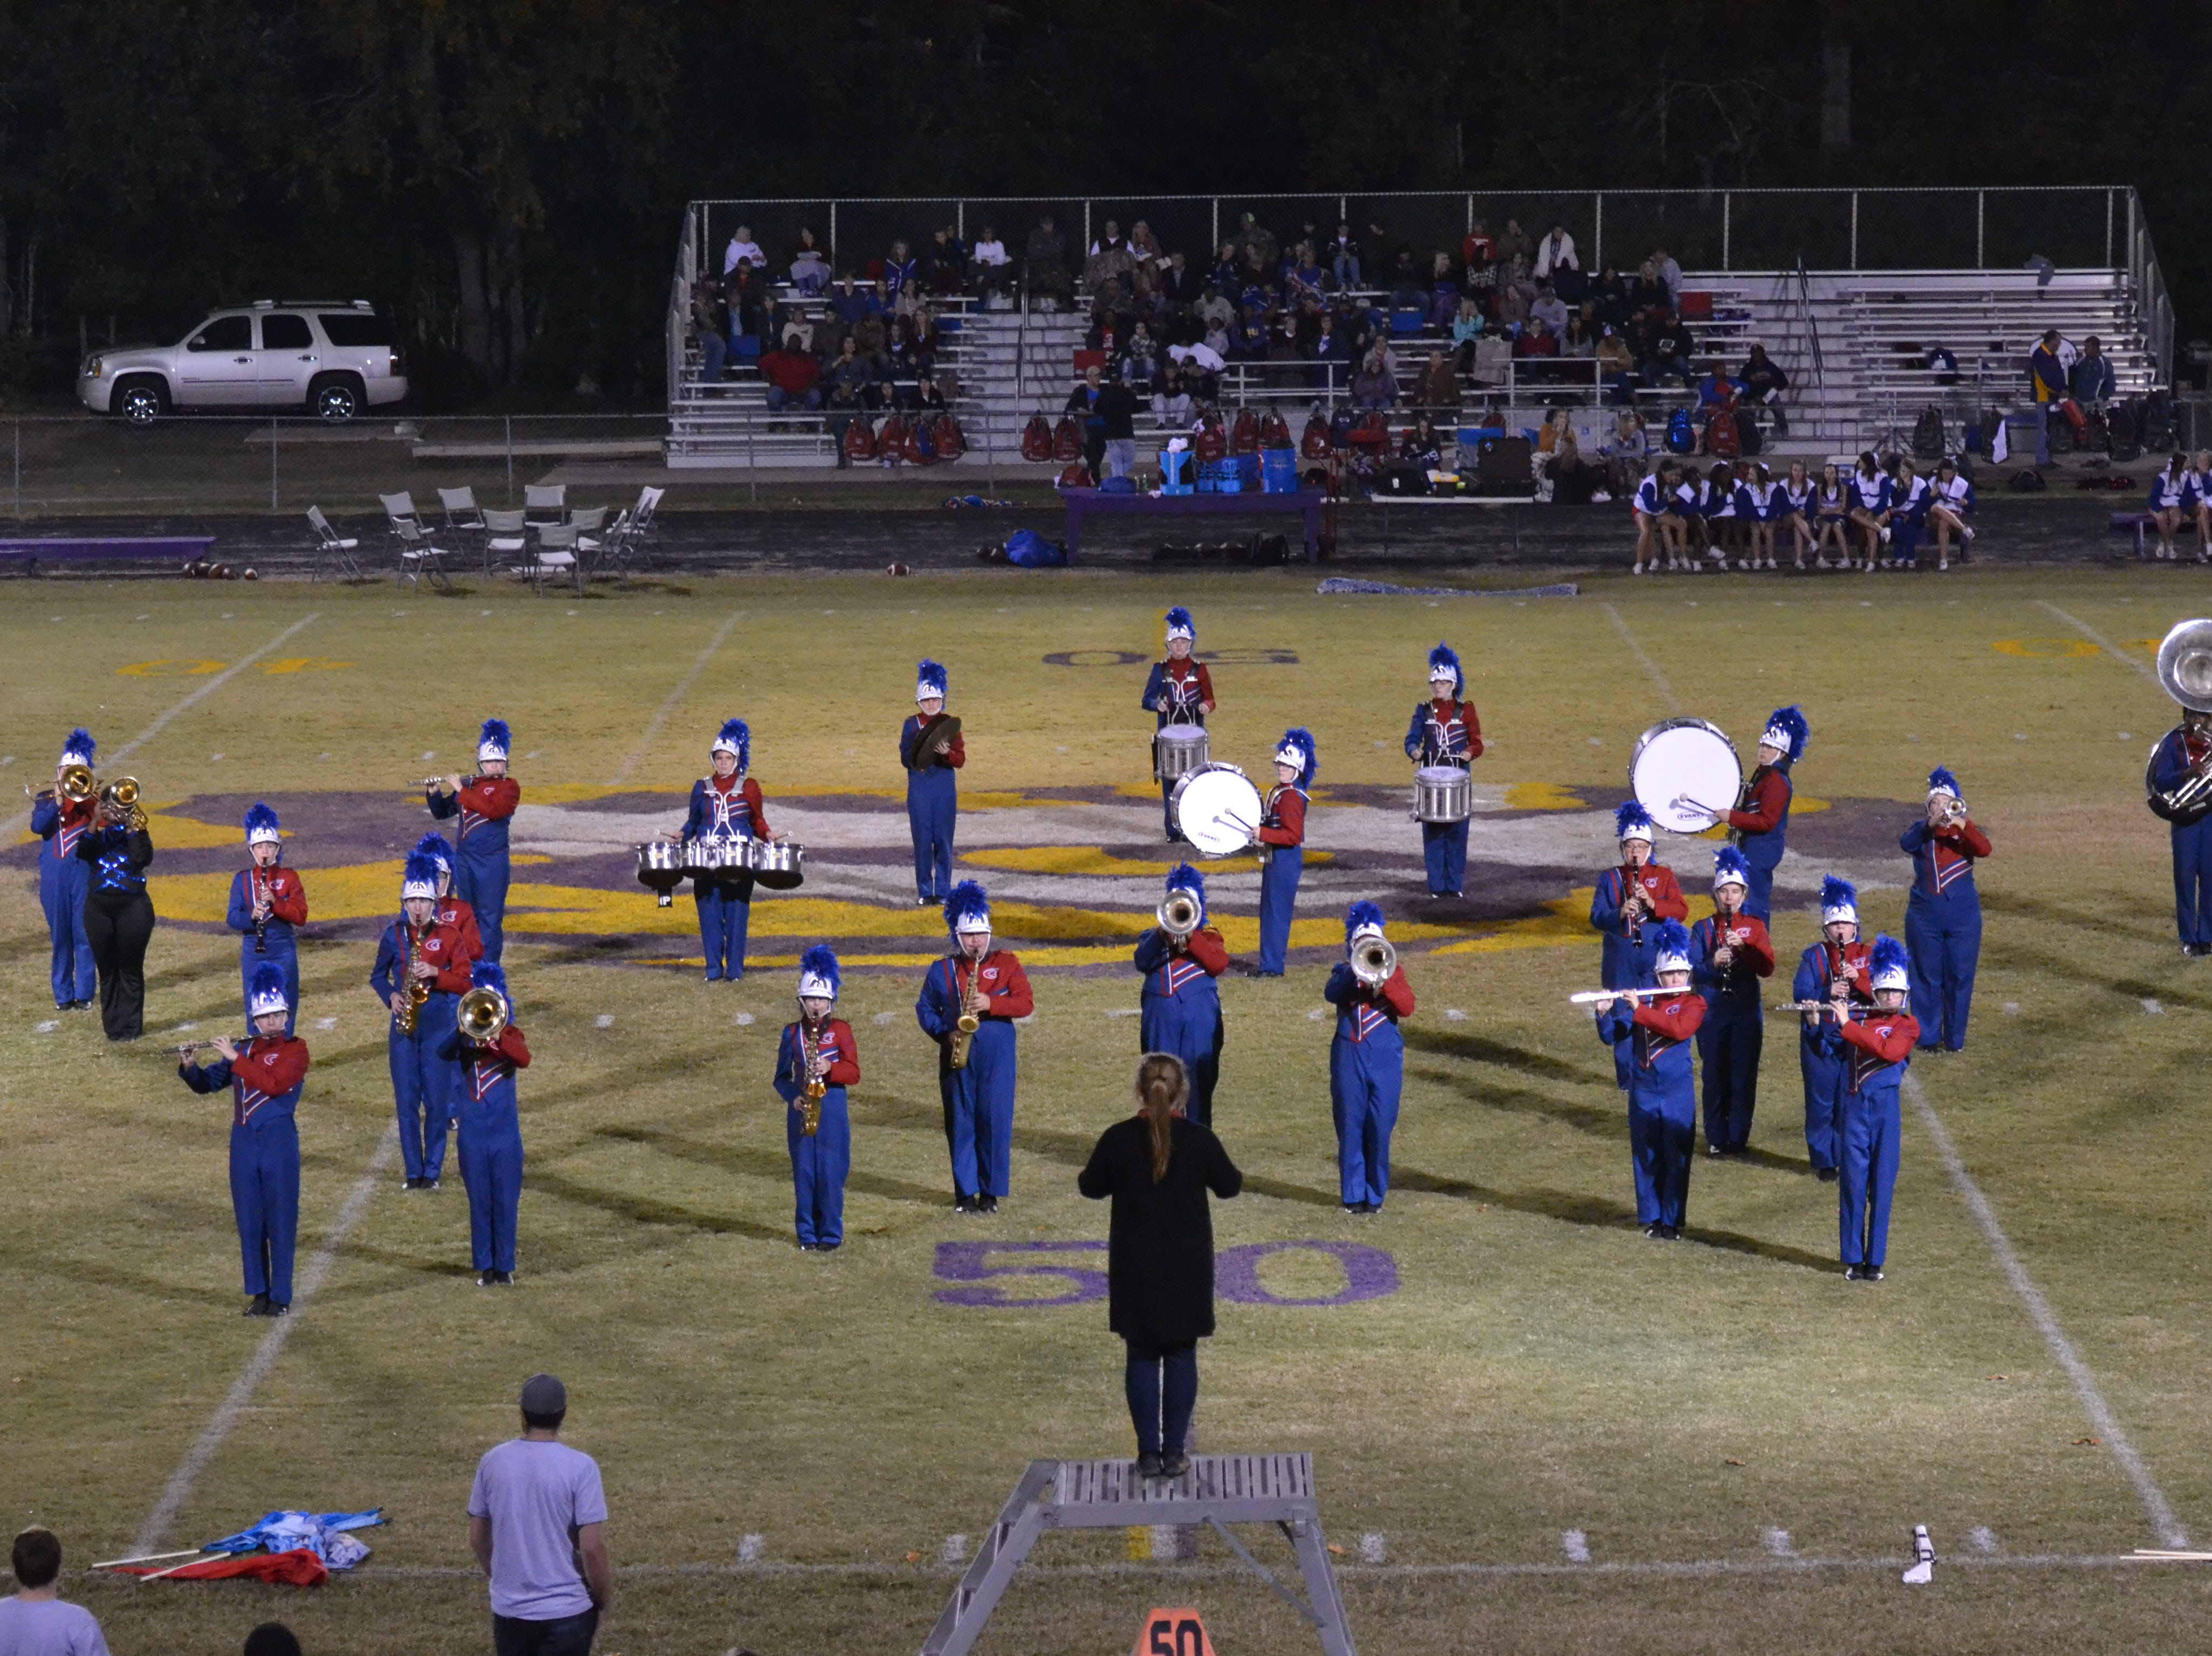 The Caldwell Marching Band performs at halftime. Marksville and Caldwell met in the regular season finale Friday night with Caldwell edging Marksville 13-8.